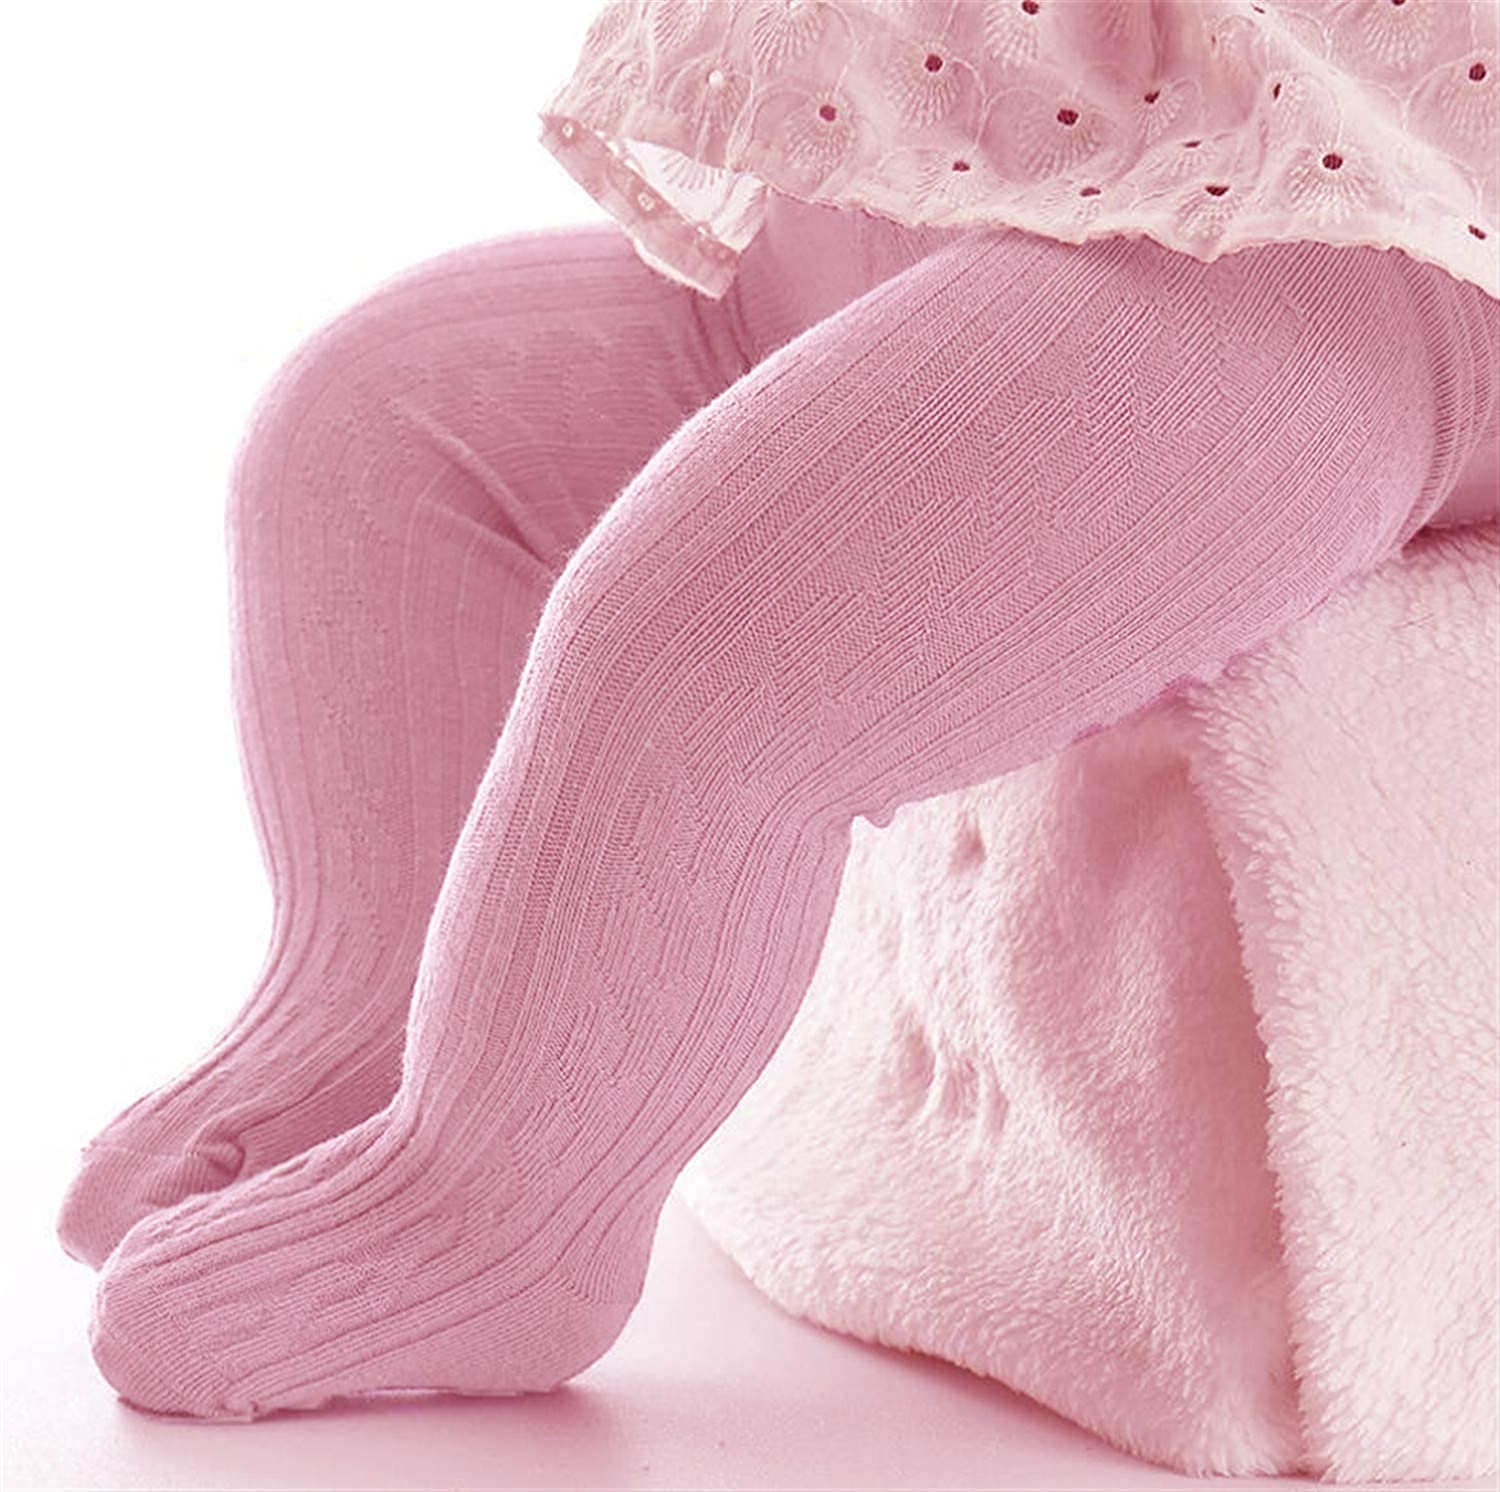 Baby Girls Tights Infant Toddler Seamless Winter Socks Girl Soft Knit Warm Full-Footed Cotton Leggings Pants